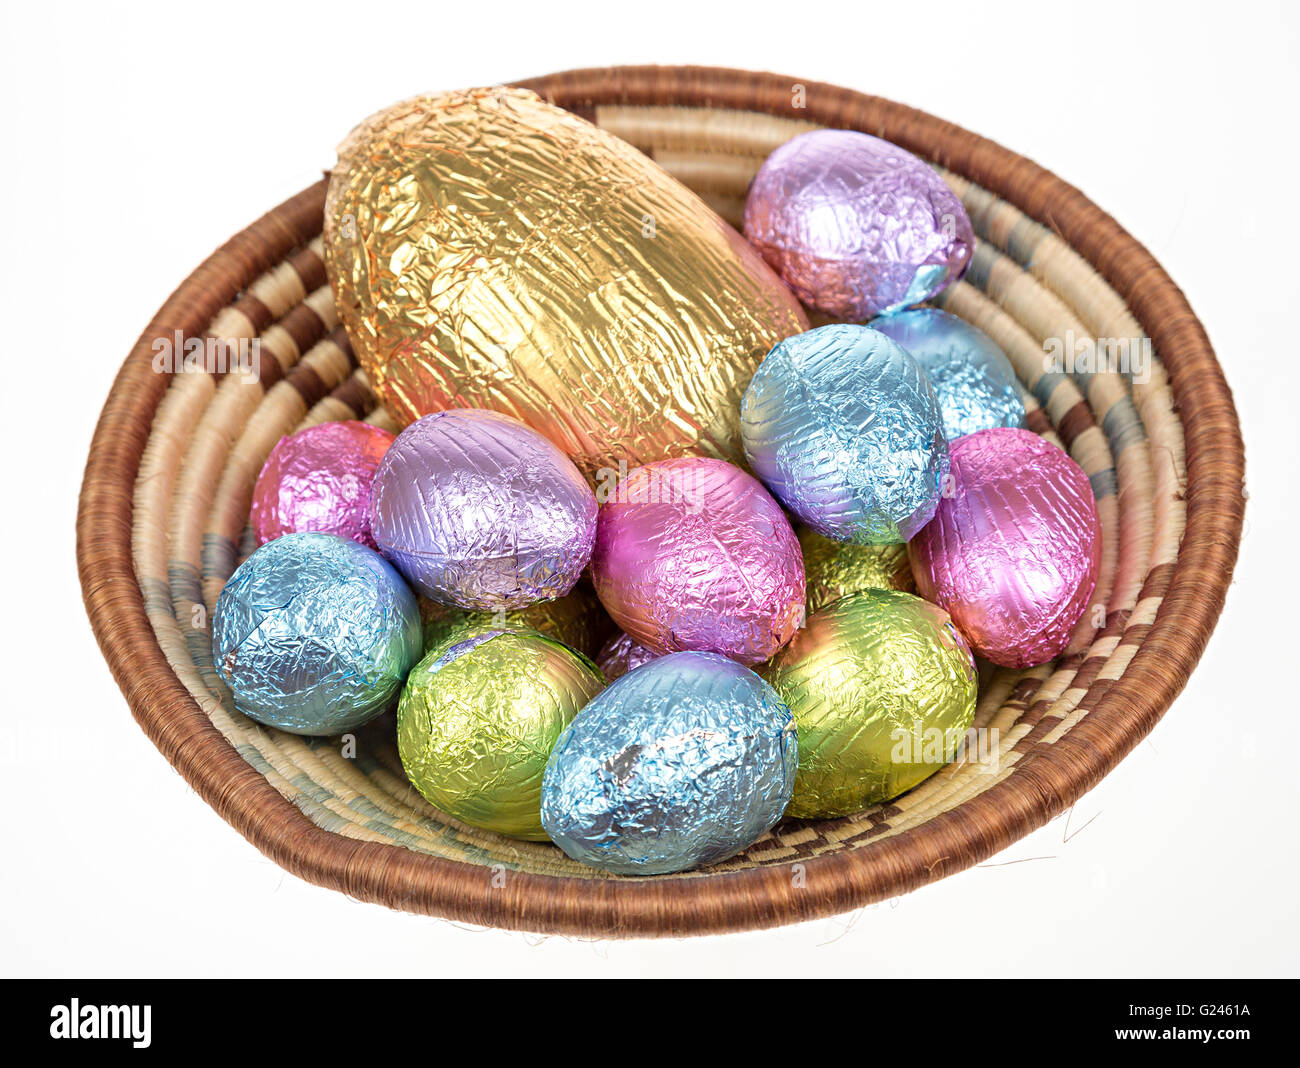 Foil wrapped chocolate easter eggs in bowl - Stock Image